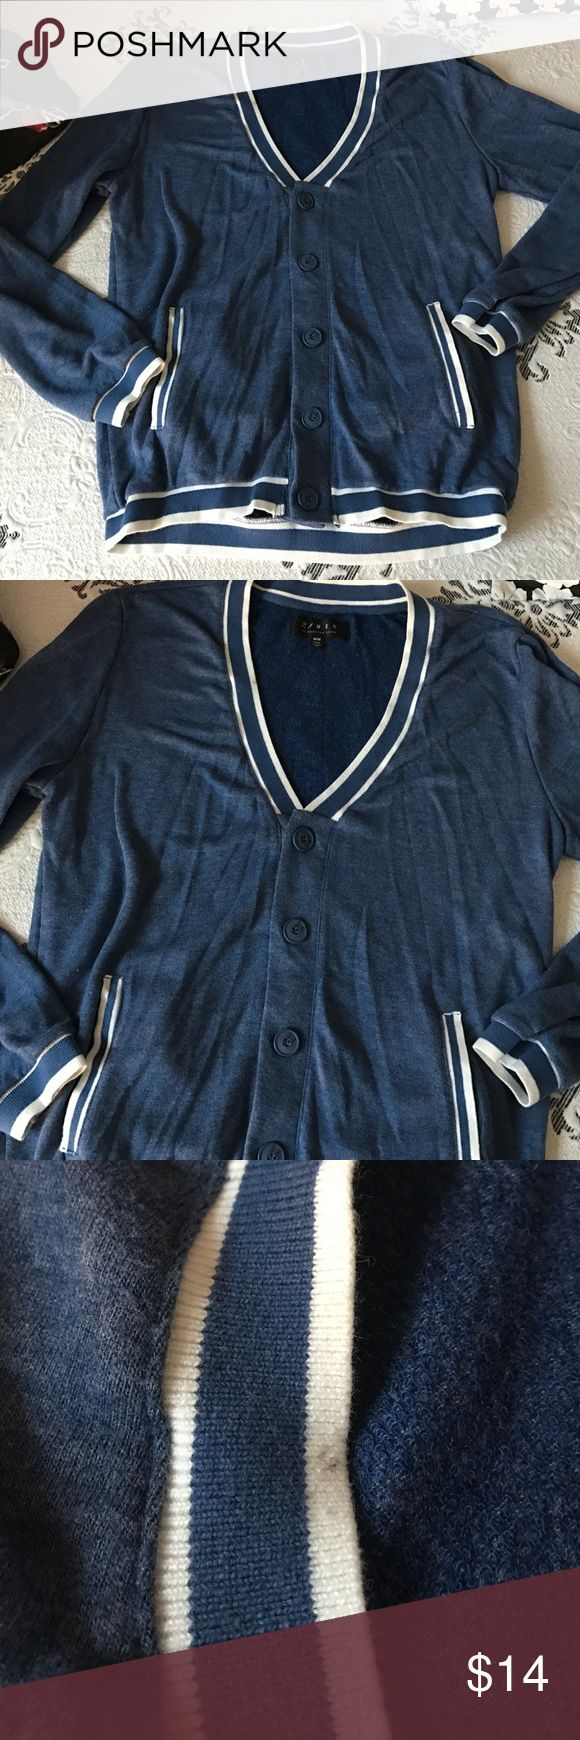 Forever 21 men's cardigan See third photo for tiny discoloration 21men Sweaters Cardigan